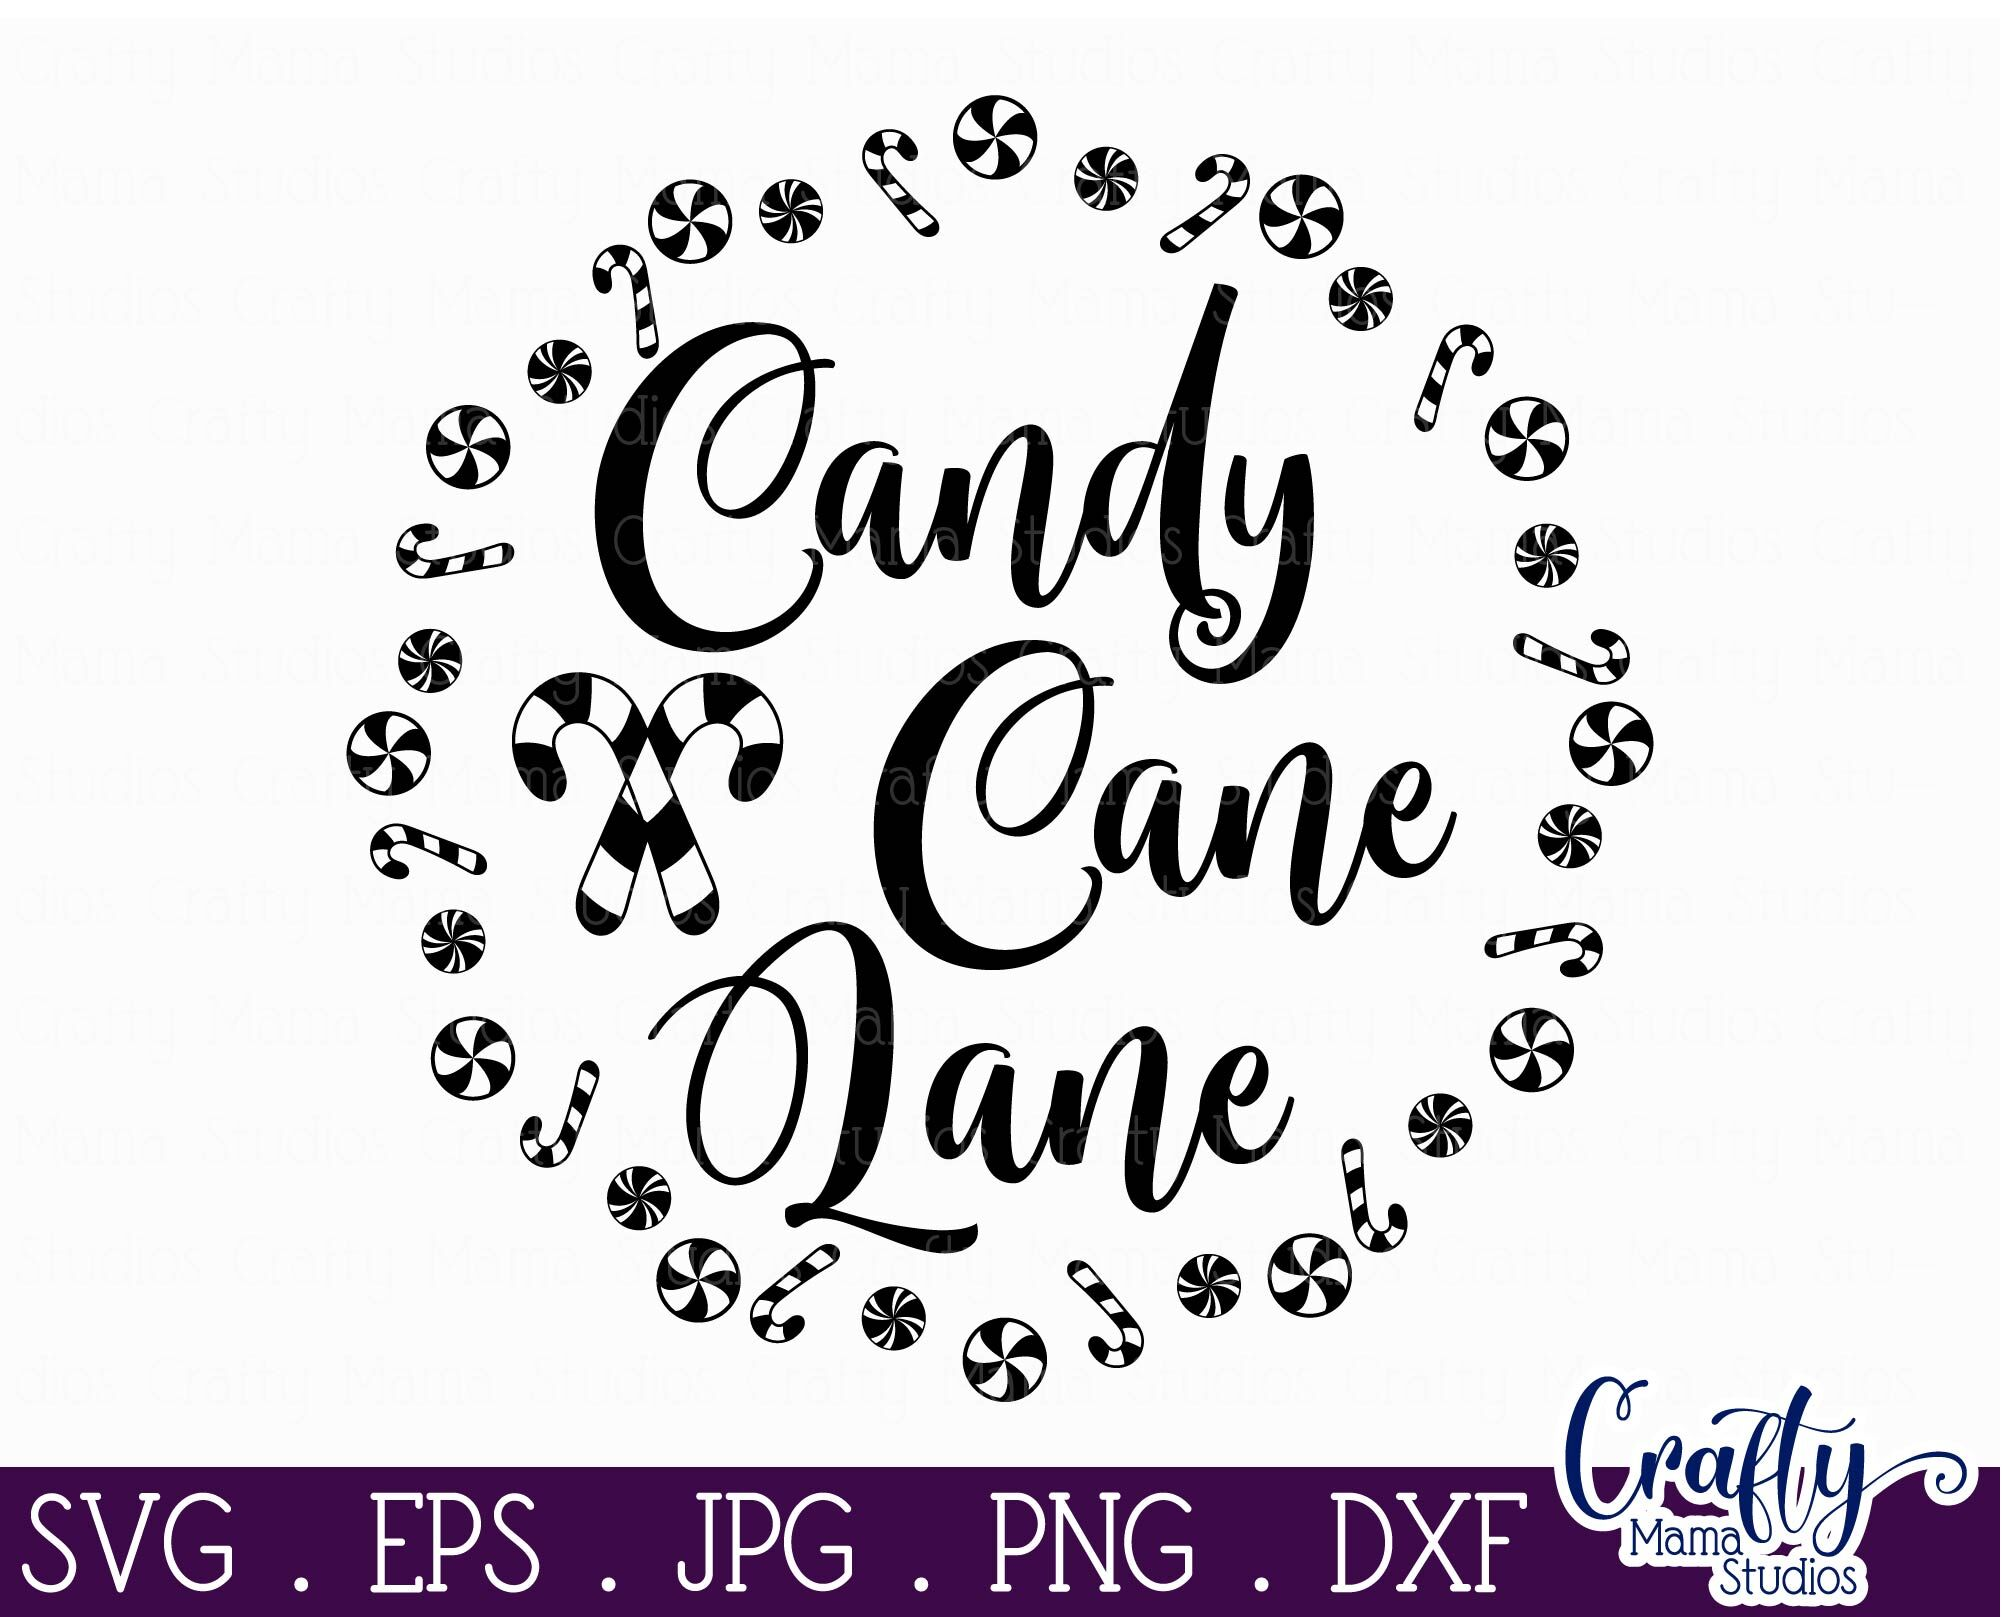 Christmas Svg Candy Cane Lane Round Sign Cut File By Crafty Mama Studios Thehungryjpeg Com